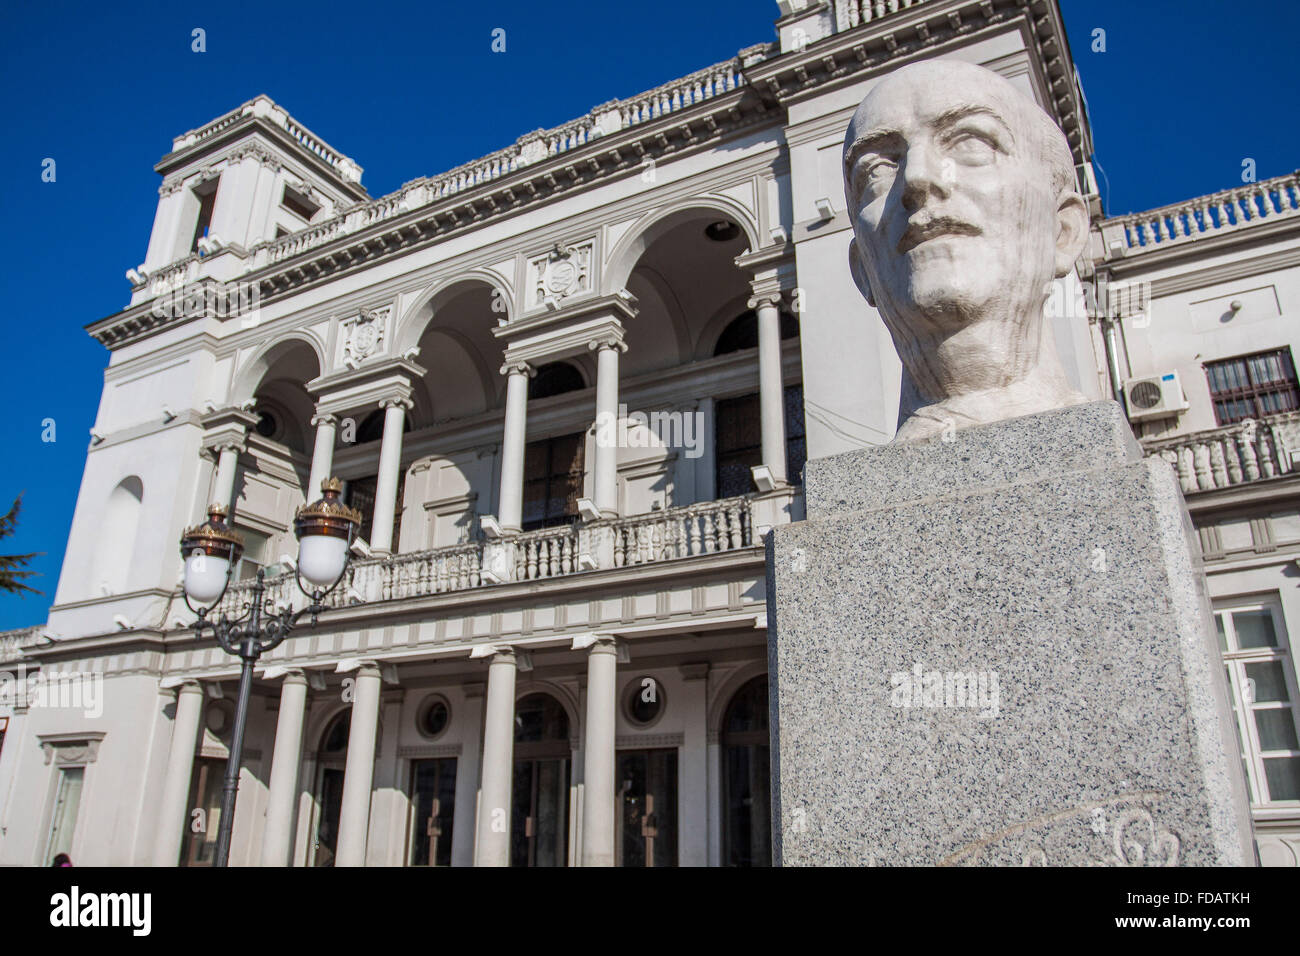 Theater in Aghmashenebeli Avenue, Tbilisi, Georgia. Stock Photo